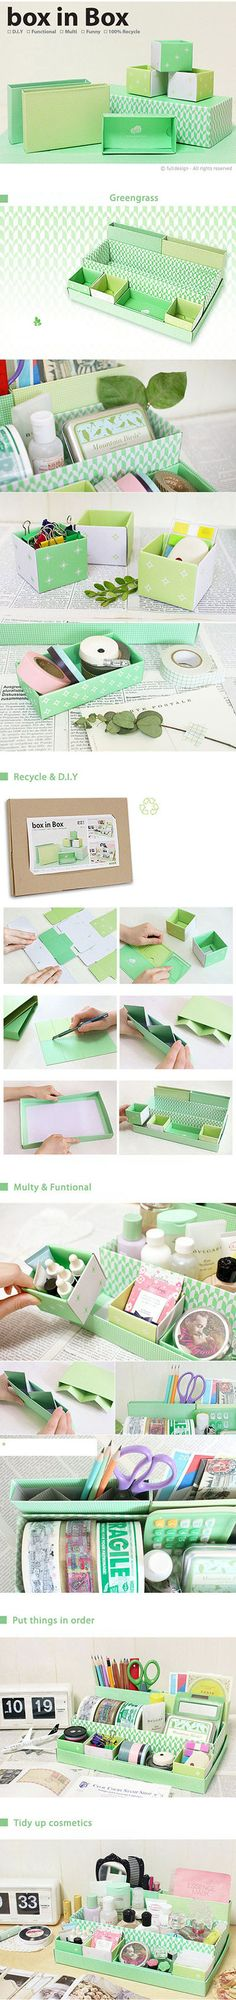 Diy Box | DIY & Crafts